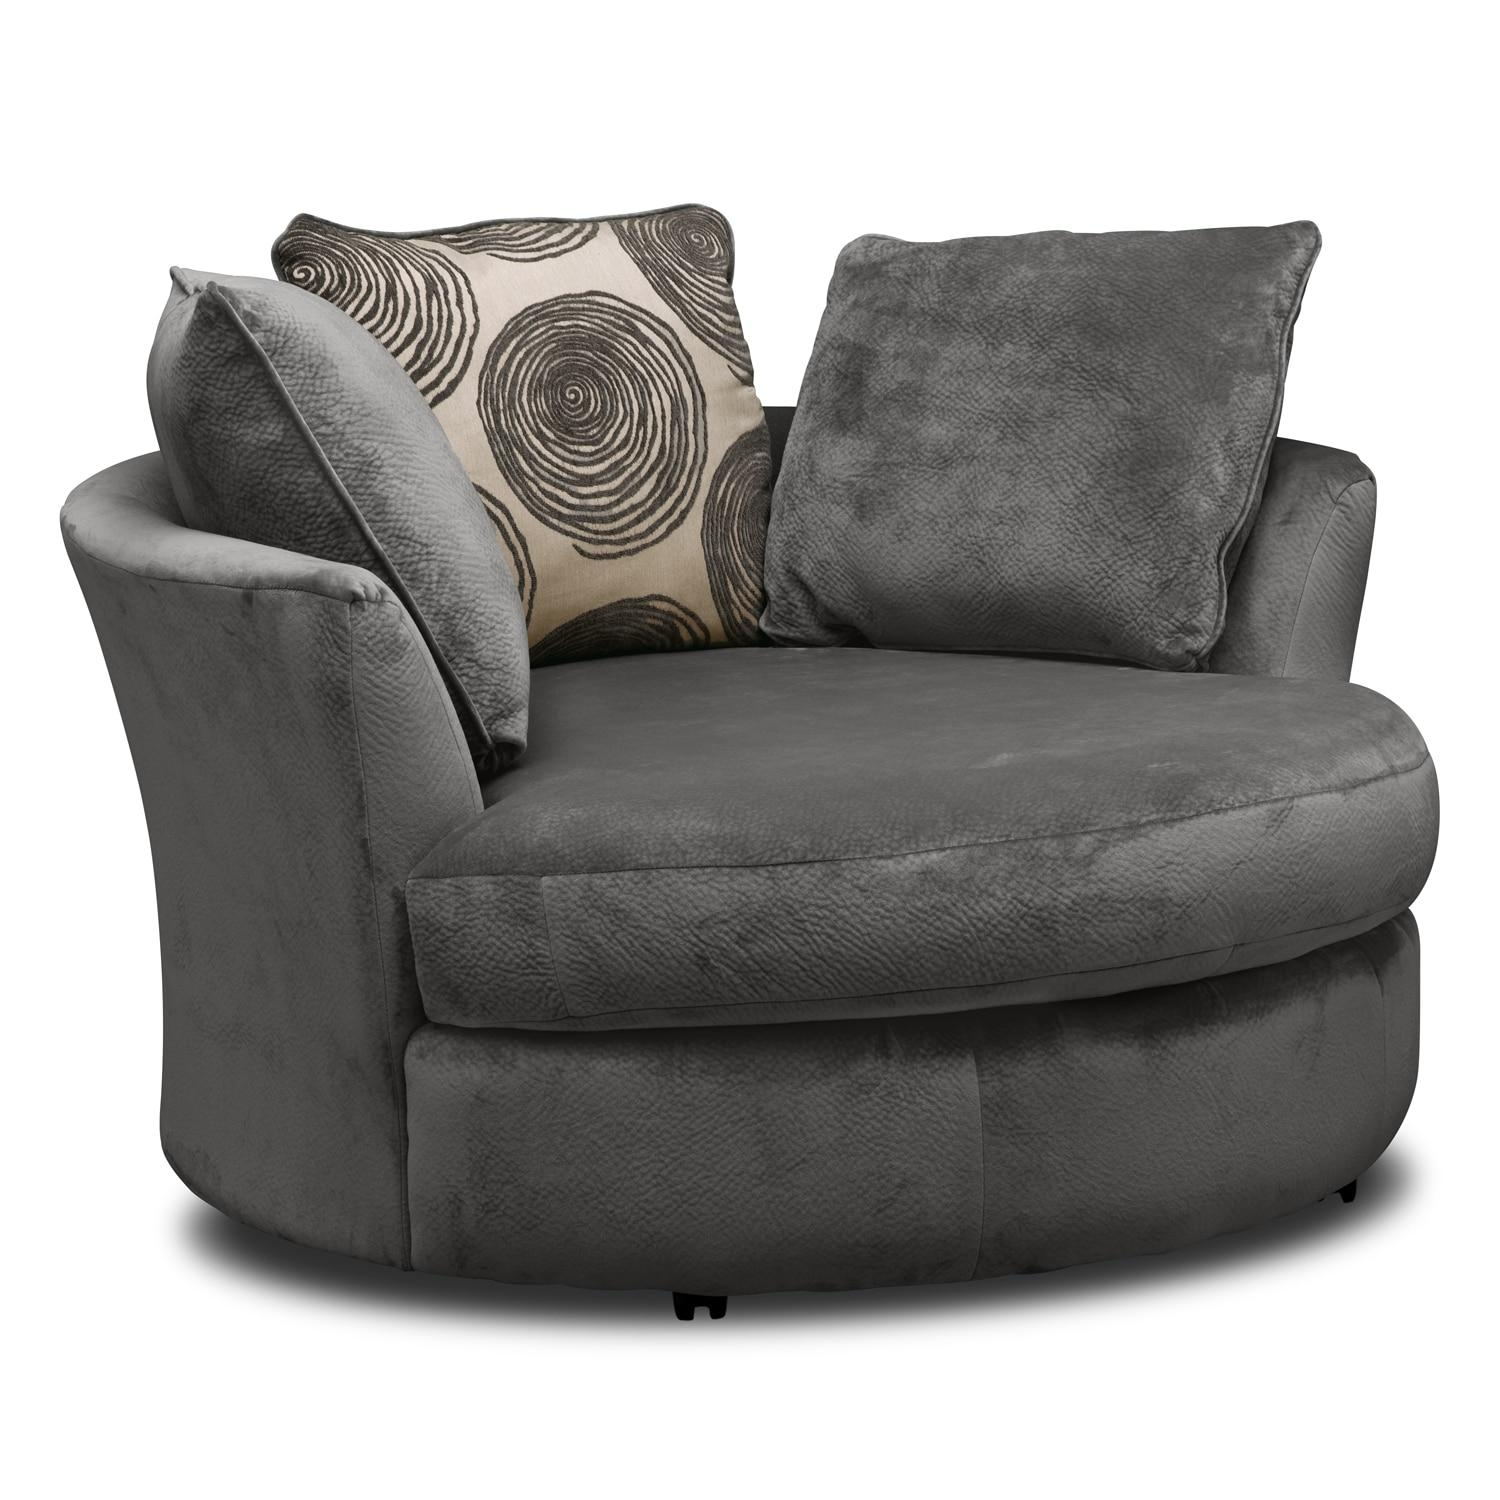 Cordelle Sofa, Loveseat And Swivel Chair Set – Gray | Value City In Sofa Loveseat And Chairs (View 16 of 20)